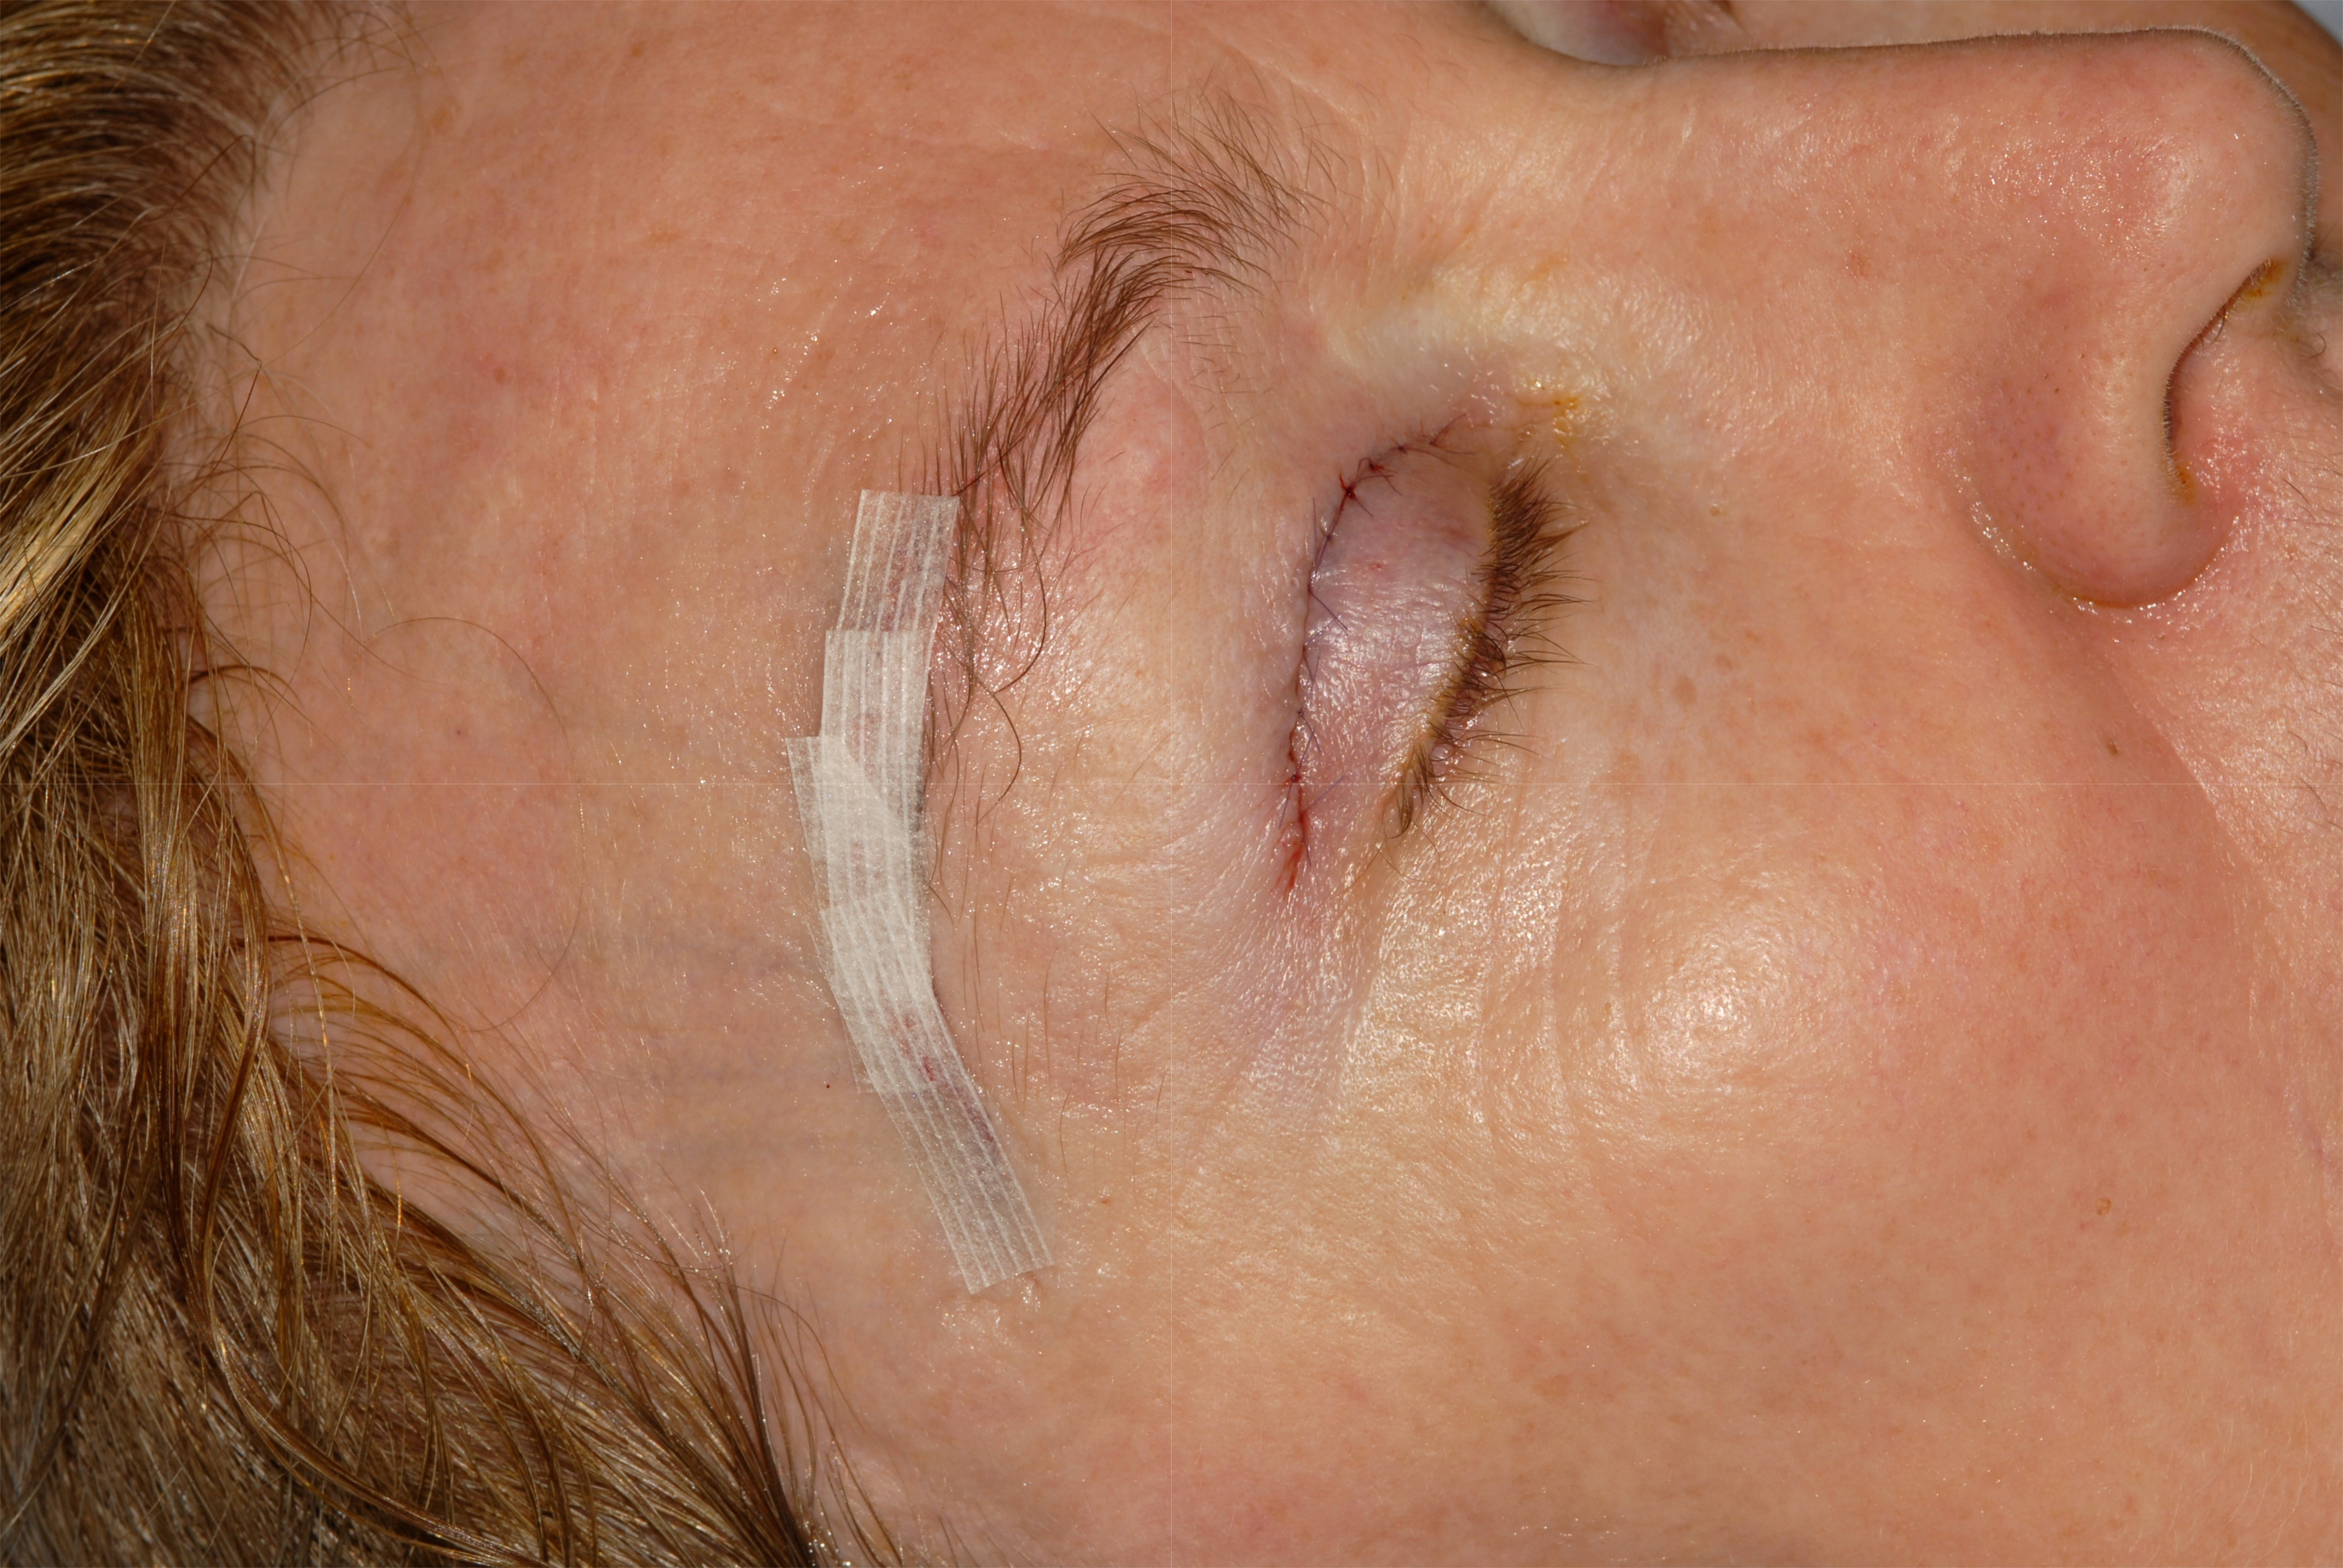 Brow Lift Surgery Anti Wrinkle Injections Brow Lift Surgeon